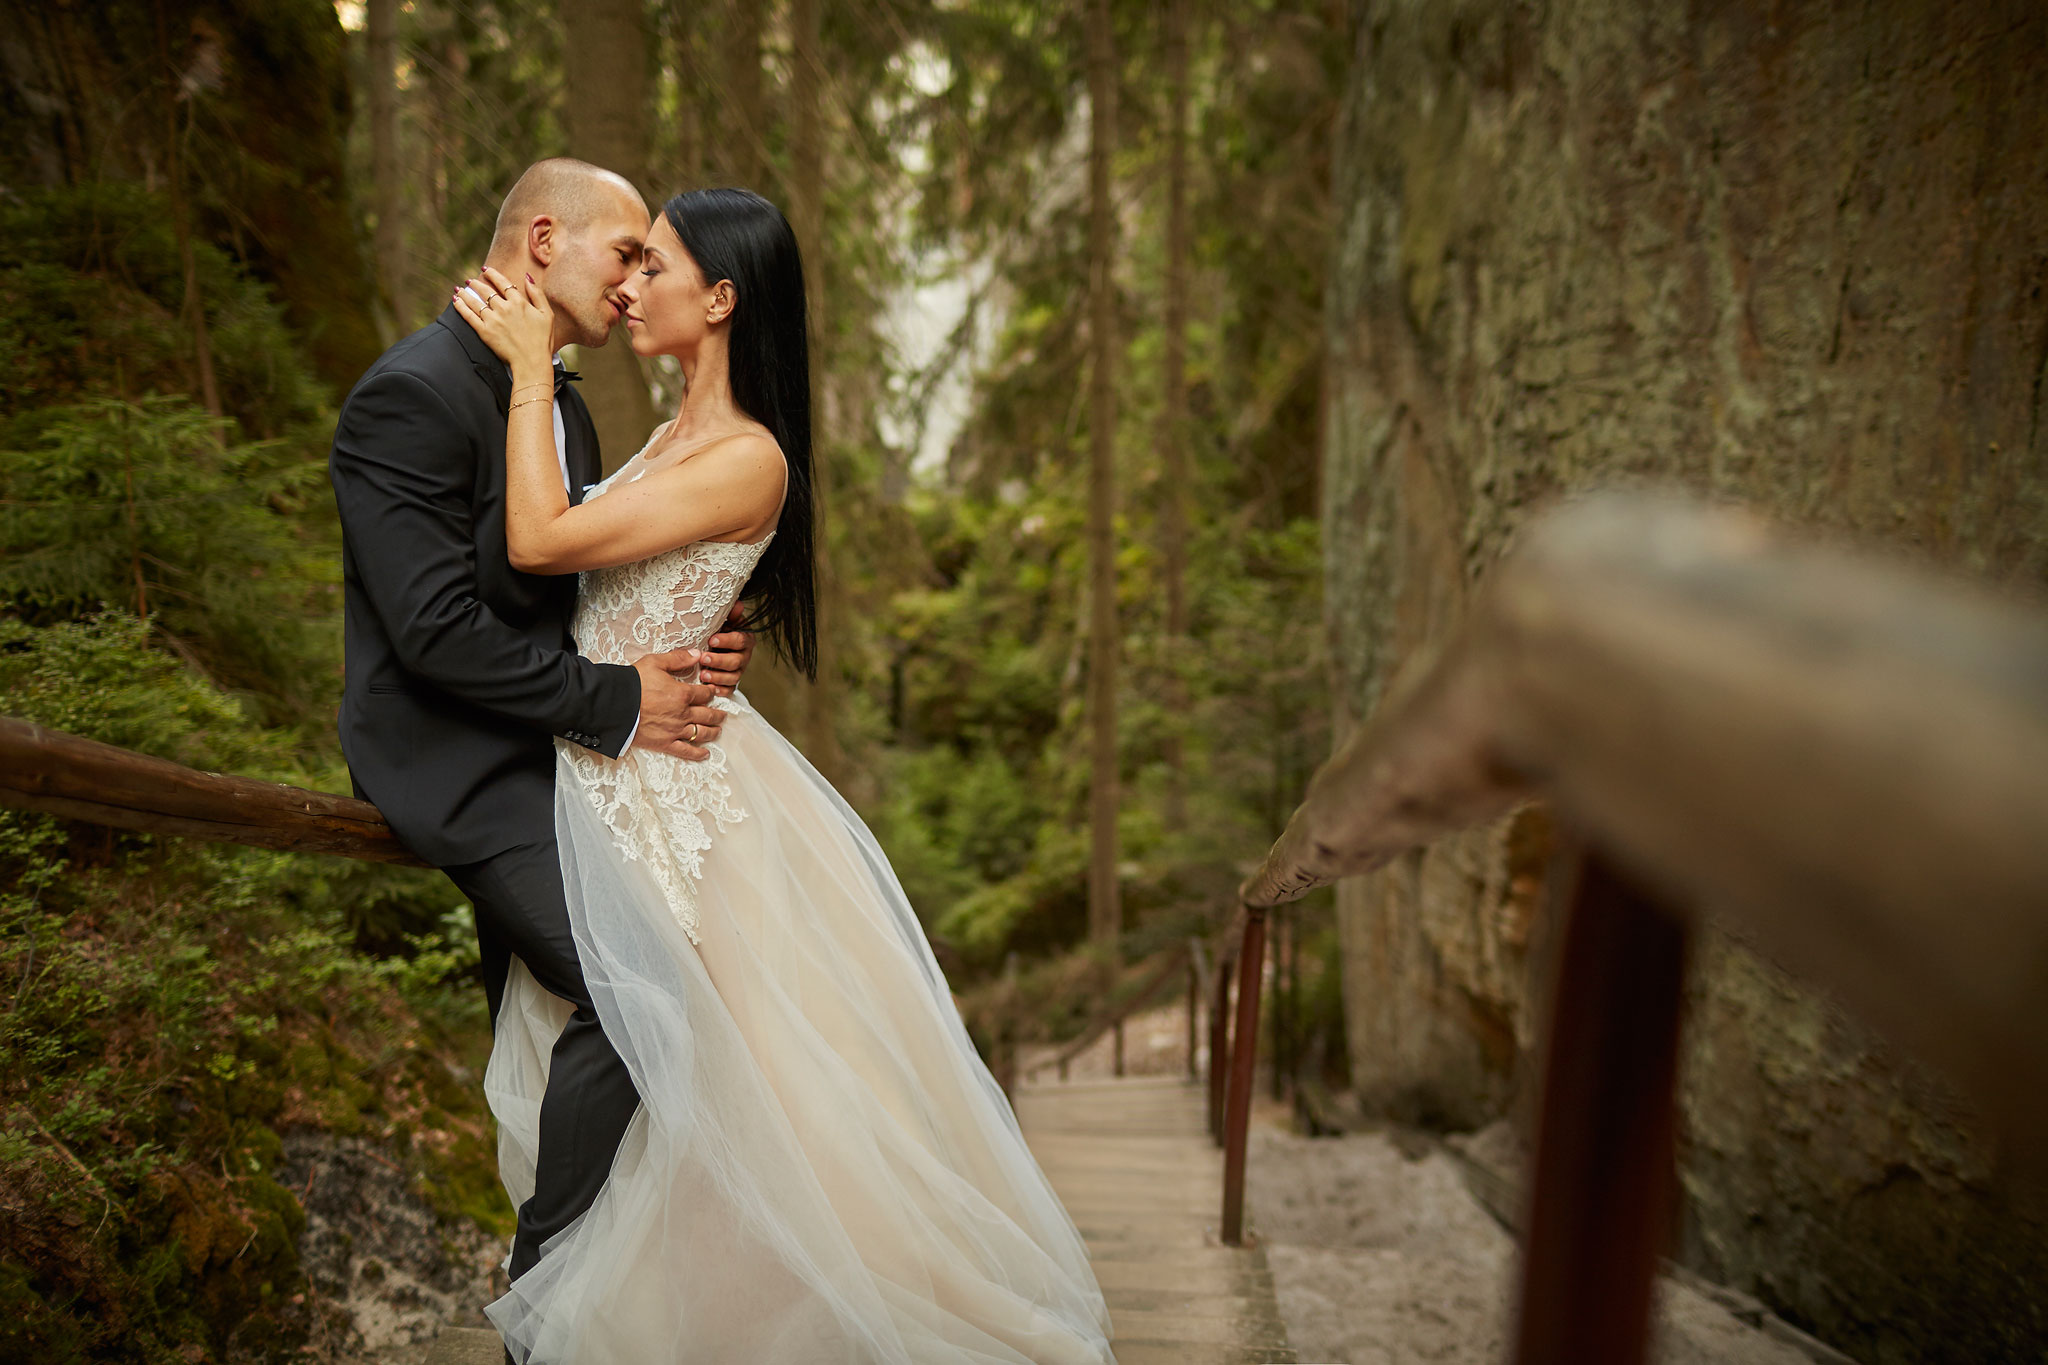 011 destination wedding photographer